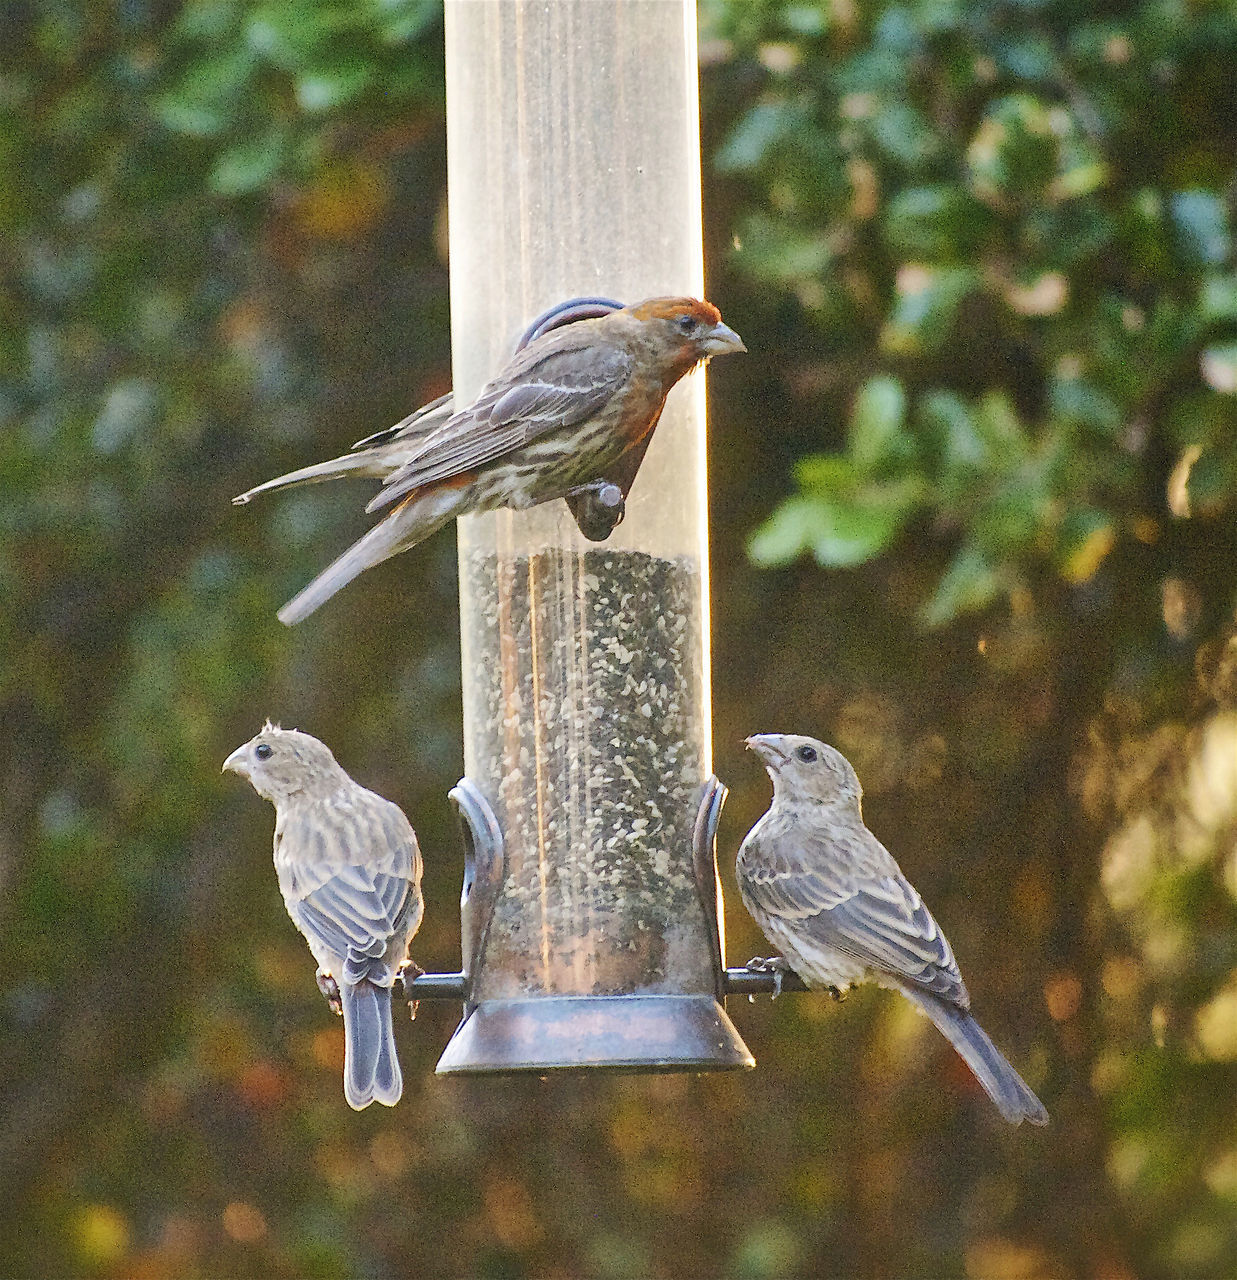 bird, bird feeder, animals in the wild, animal themes, perching, animal wildlife, focus on foreground, no people, day, outdoors, nature, food, sparrow, close-up